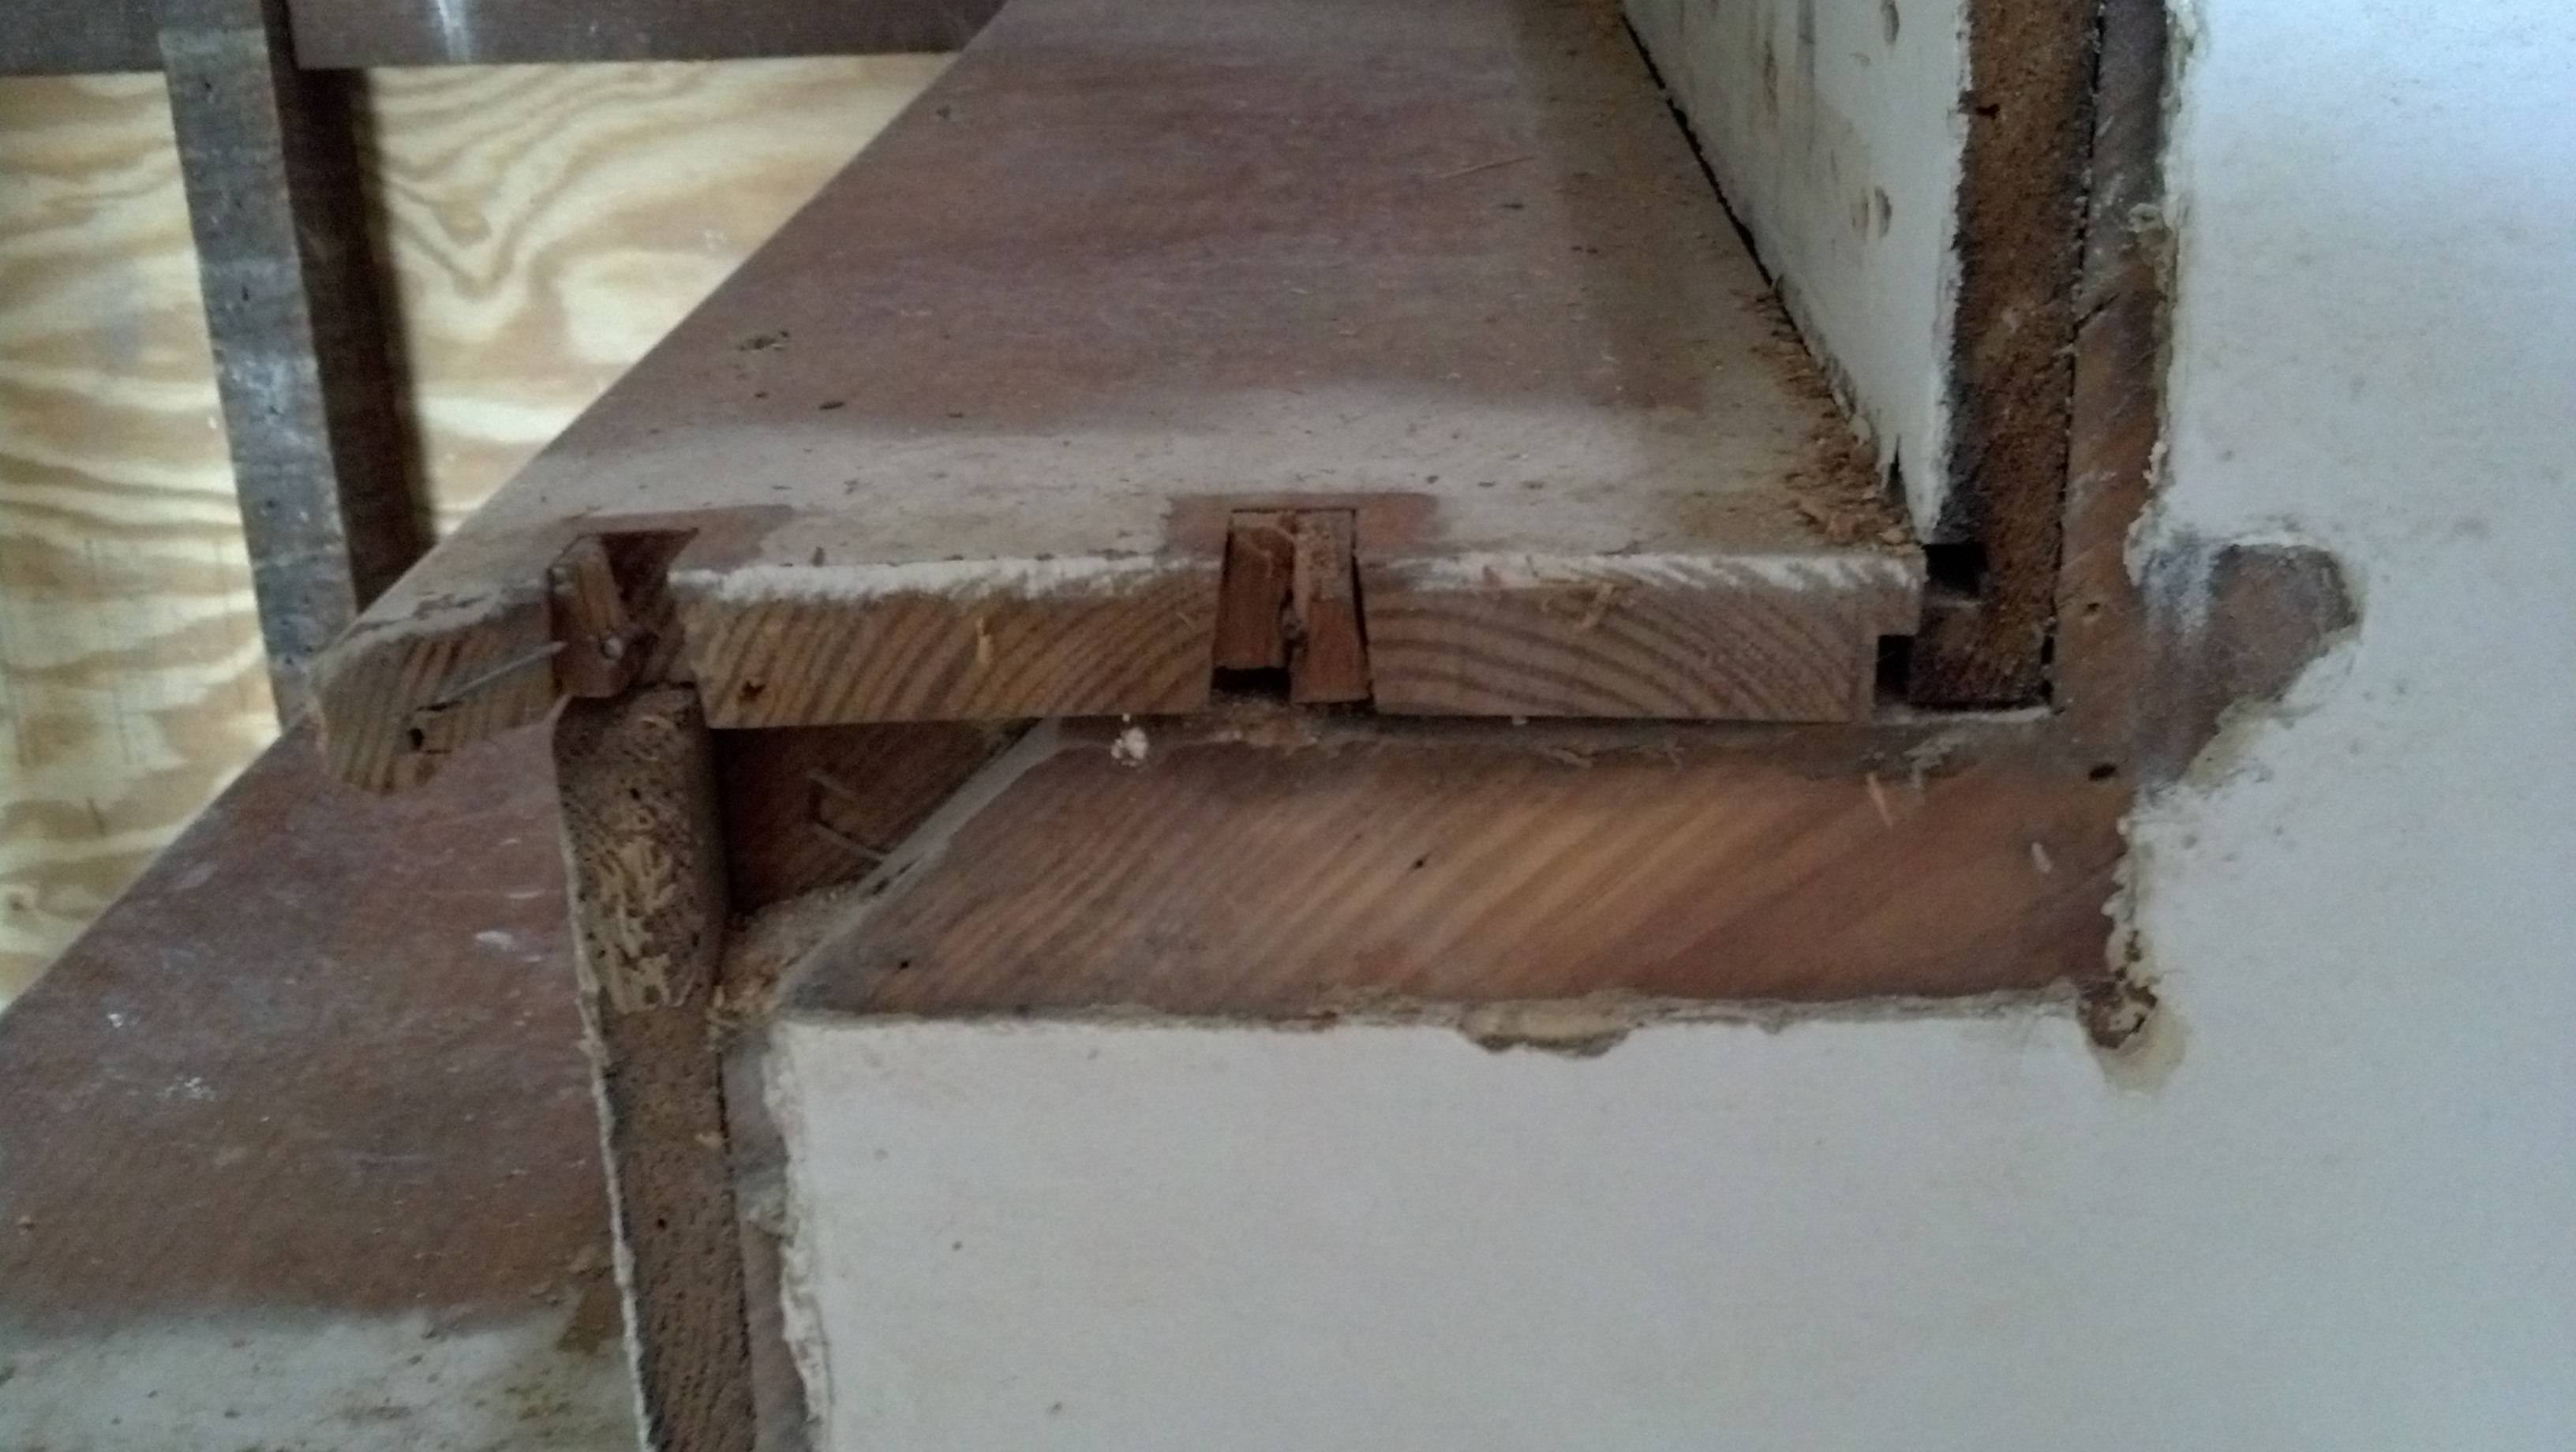 How Should Stair Treads And Risers Be Assembled Home   Oak Stair Tread Caps   Pergo Outlast   Scraped Oak   Riser Kit   Wood   Sp125 4F048C